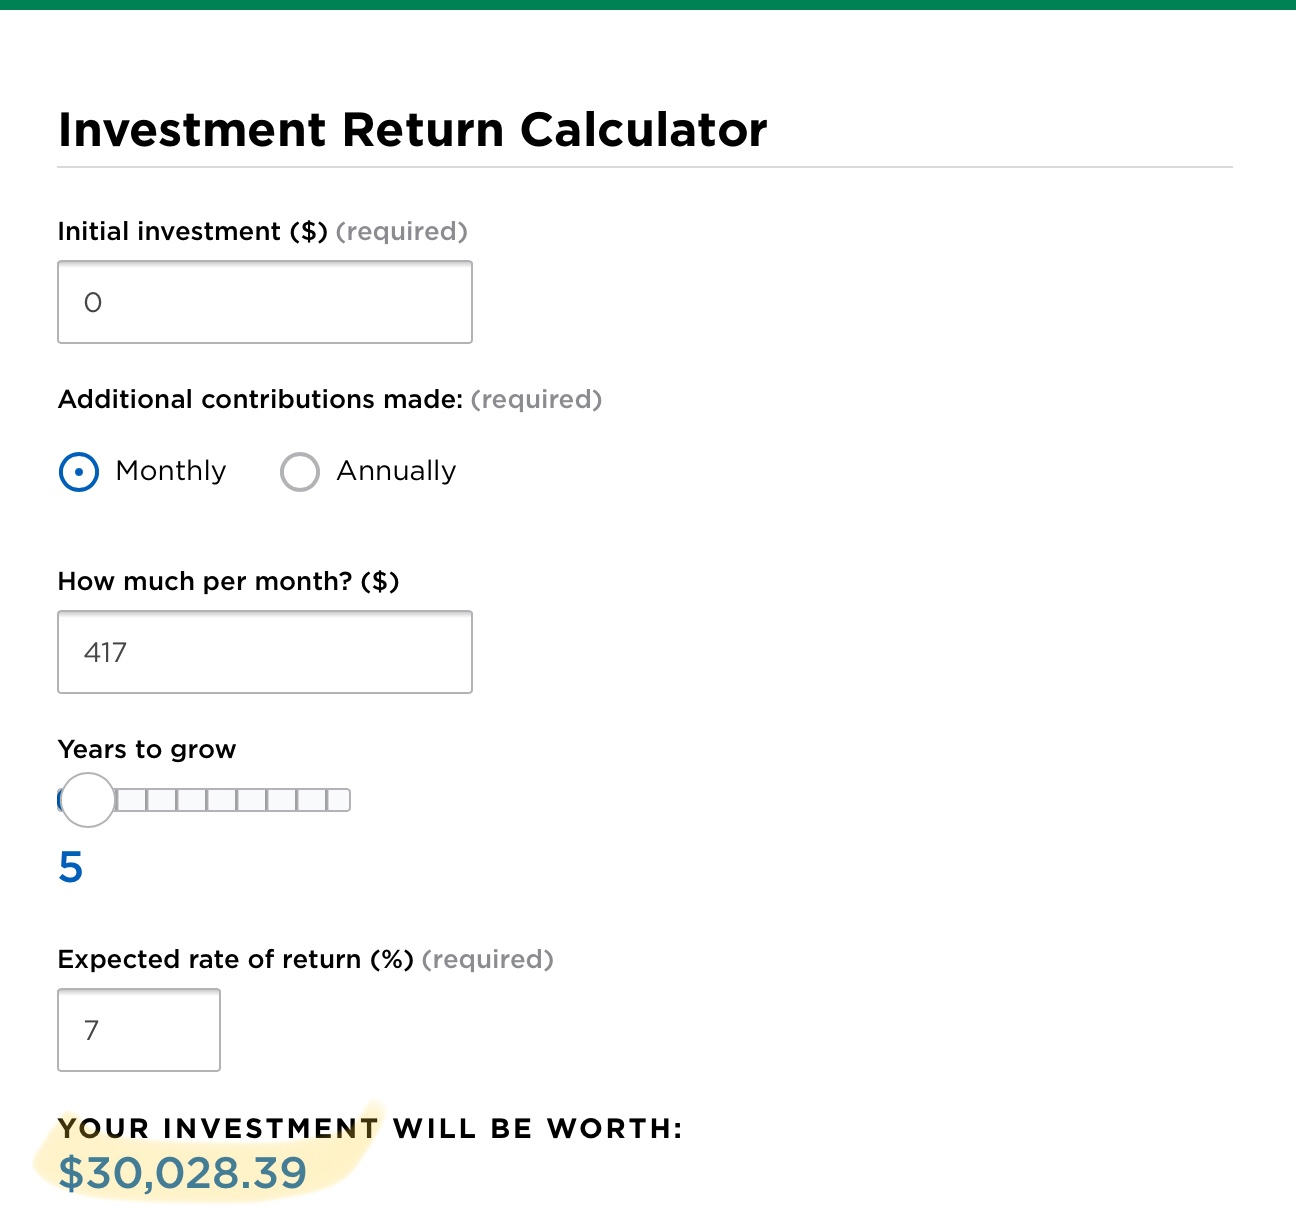 By investing their monthly donations, they could end up with $5K more over a 5 year period! Calculator here.